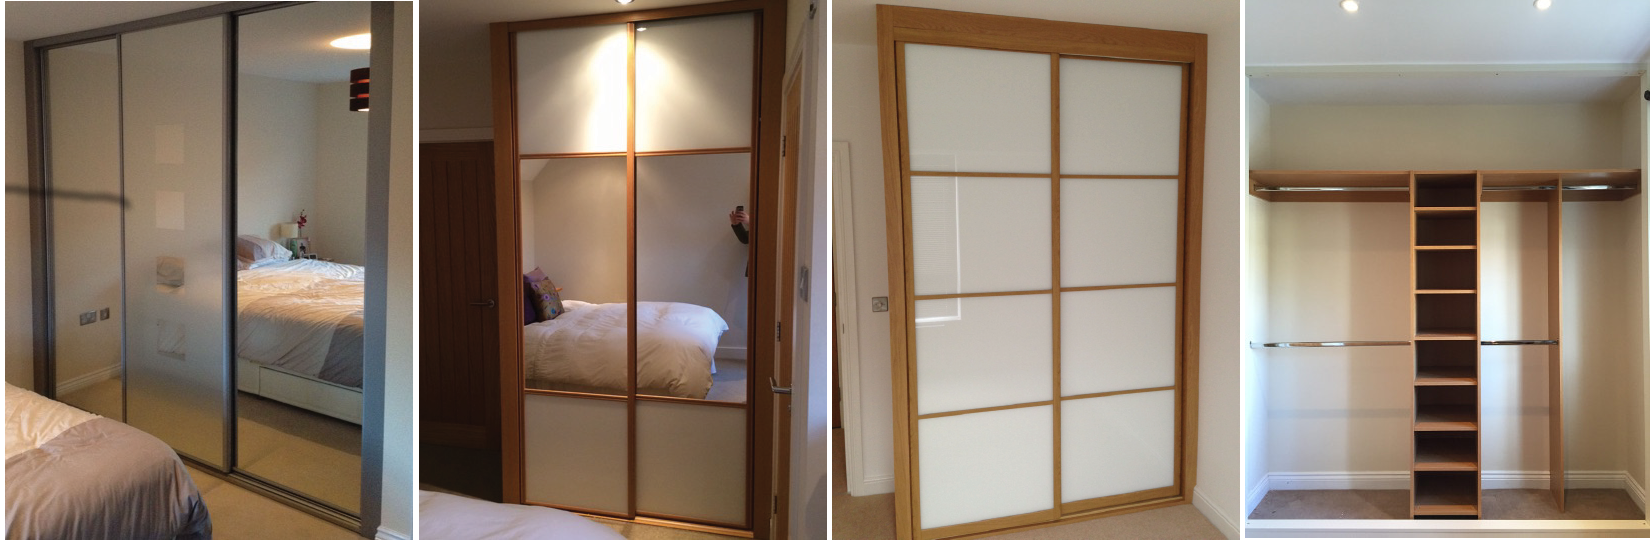 Sliding Wardrobe Doors Superglide Wardrobes Uk